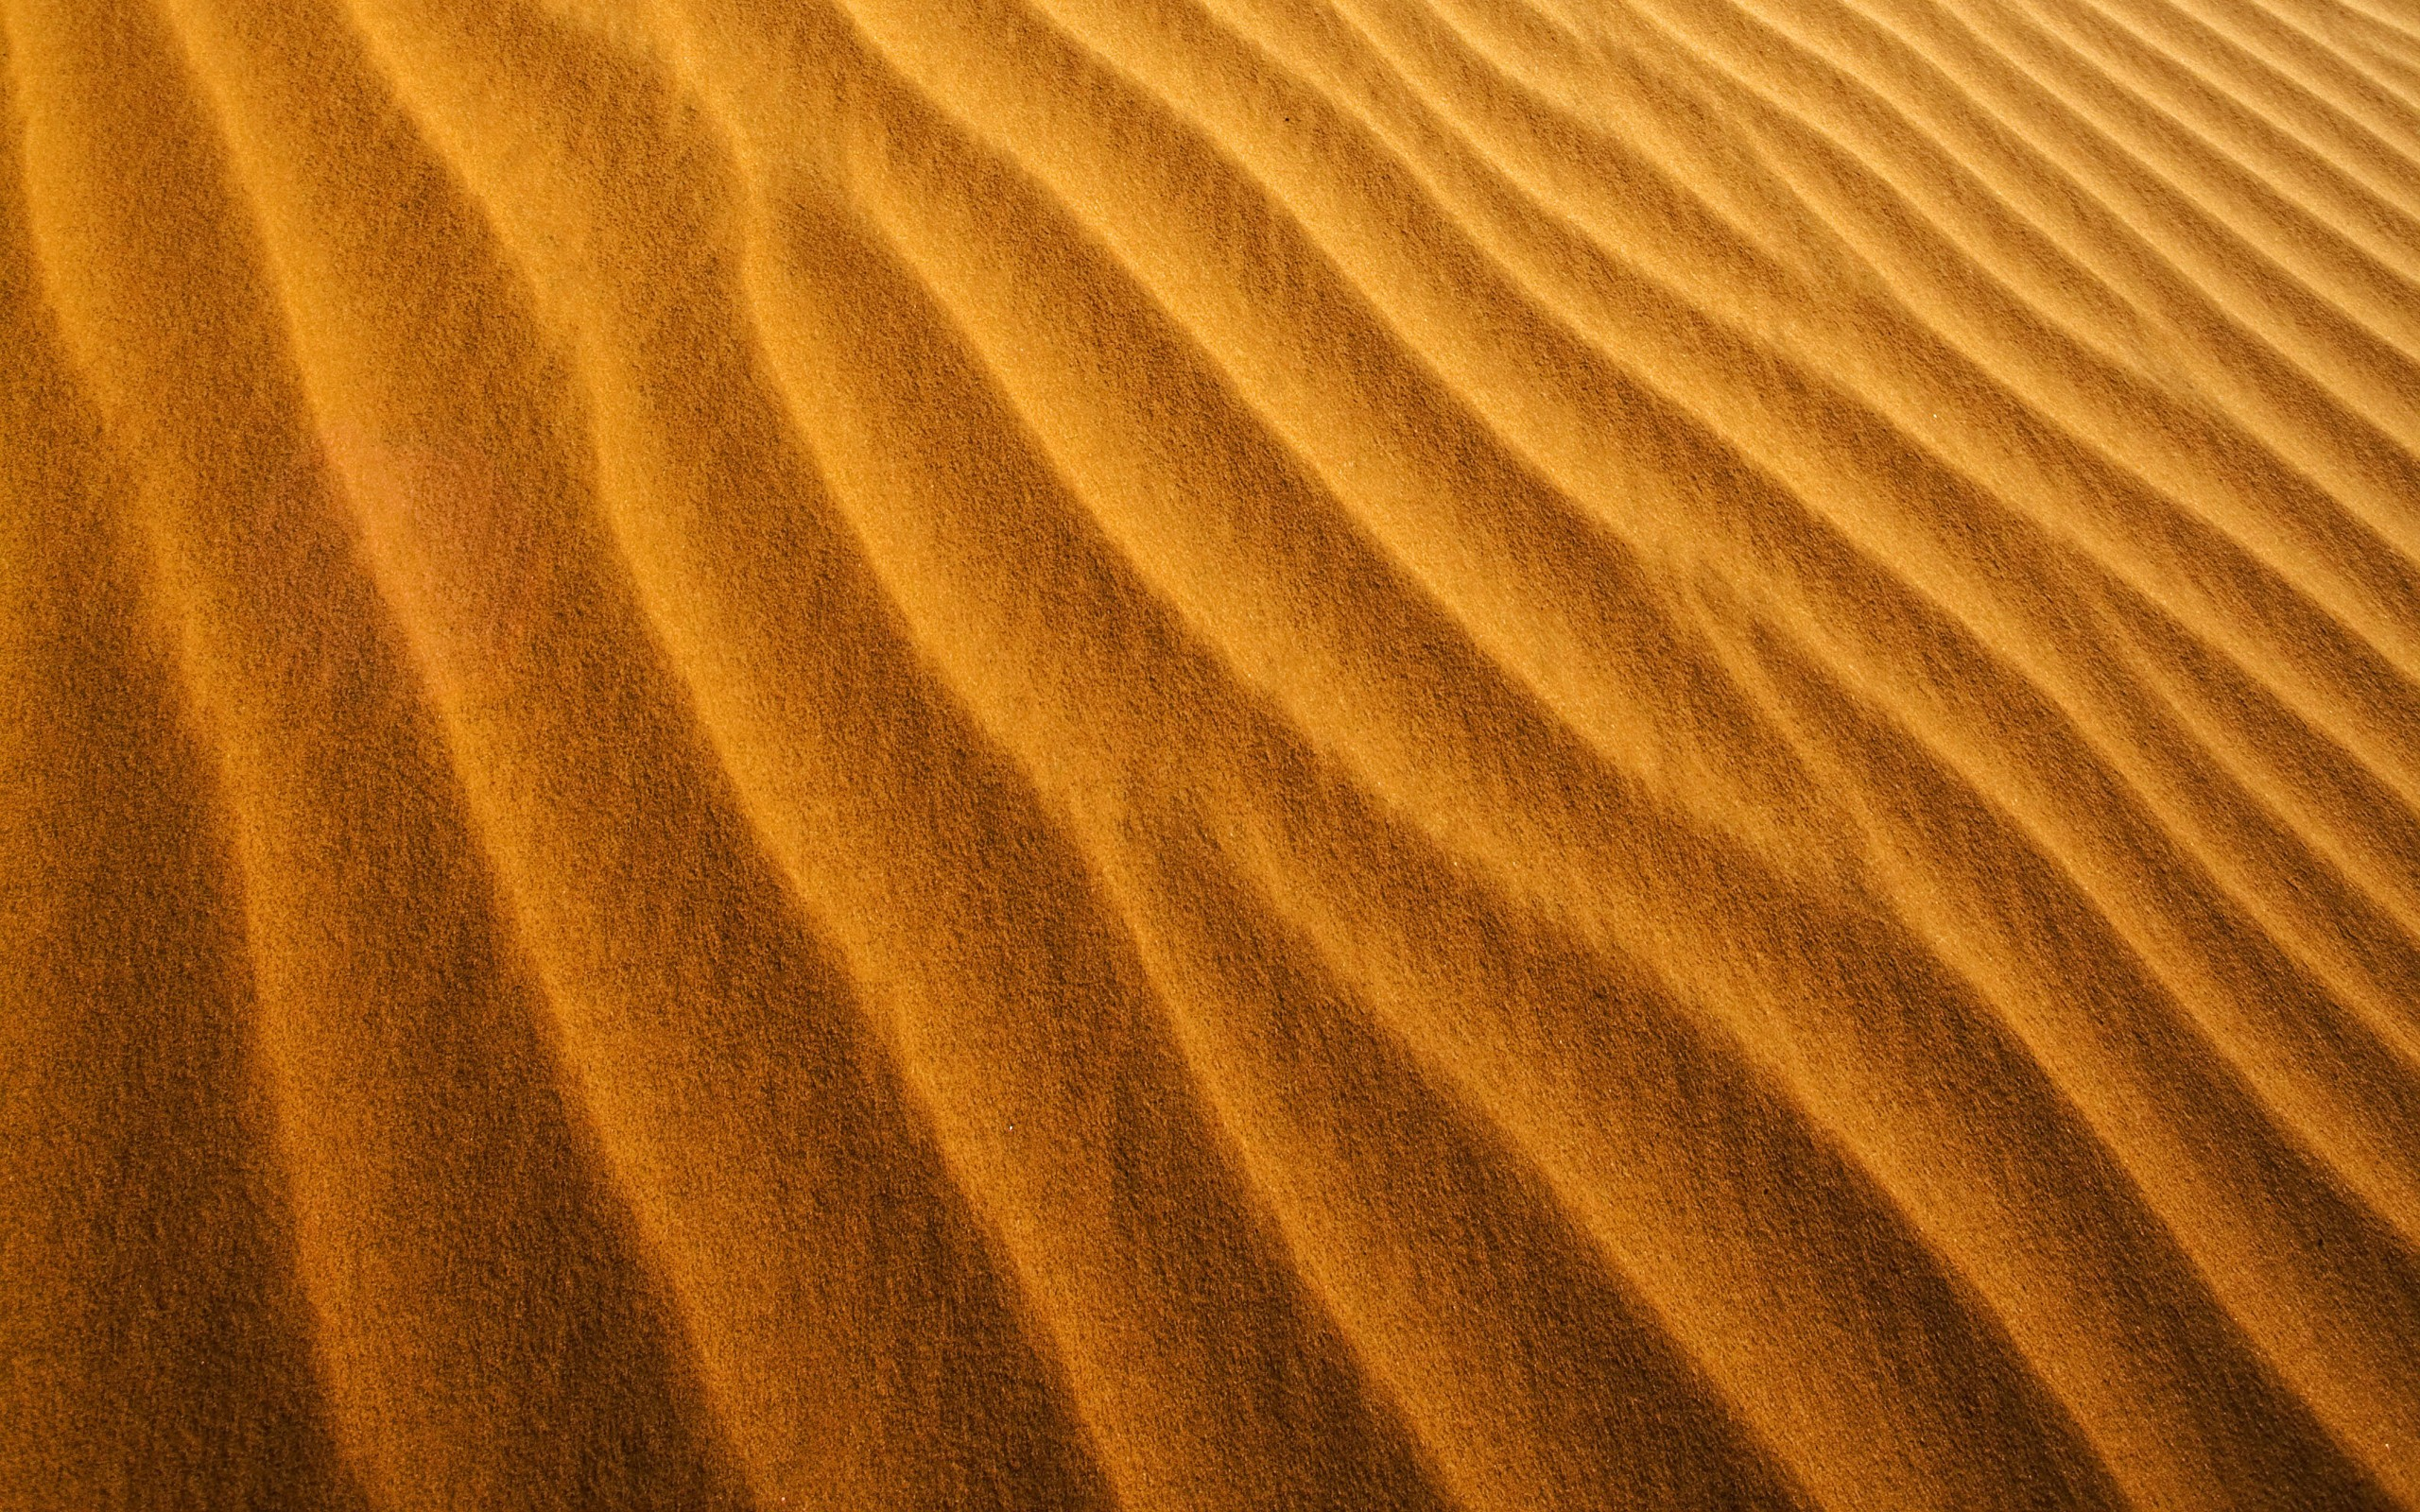 desert sand wallpaper 22212